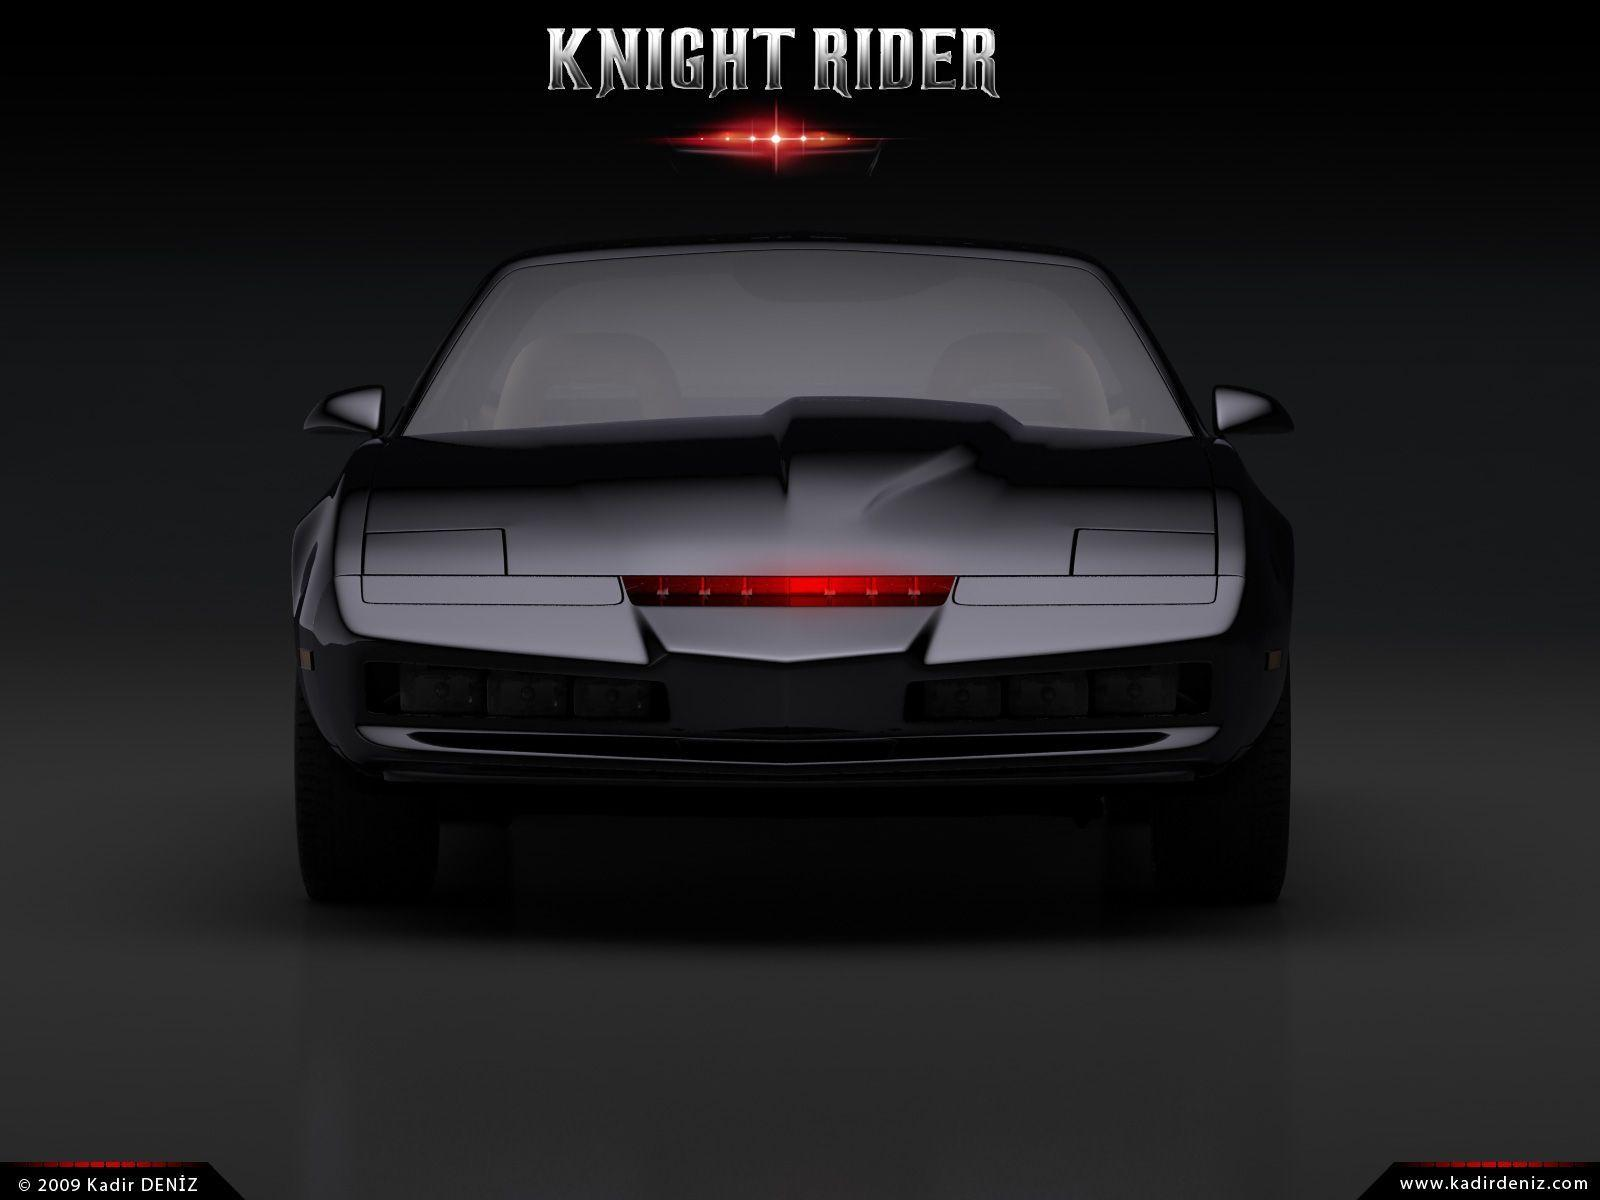 Image For > Knight Rider Wallpapers